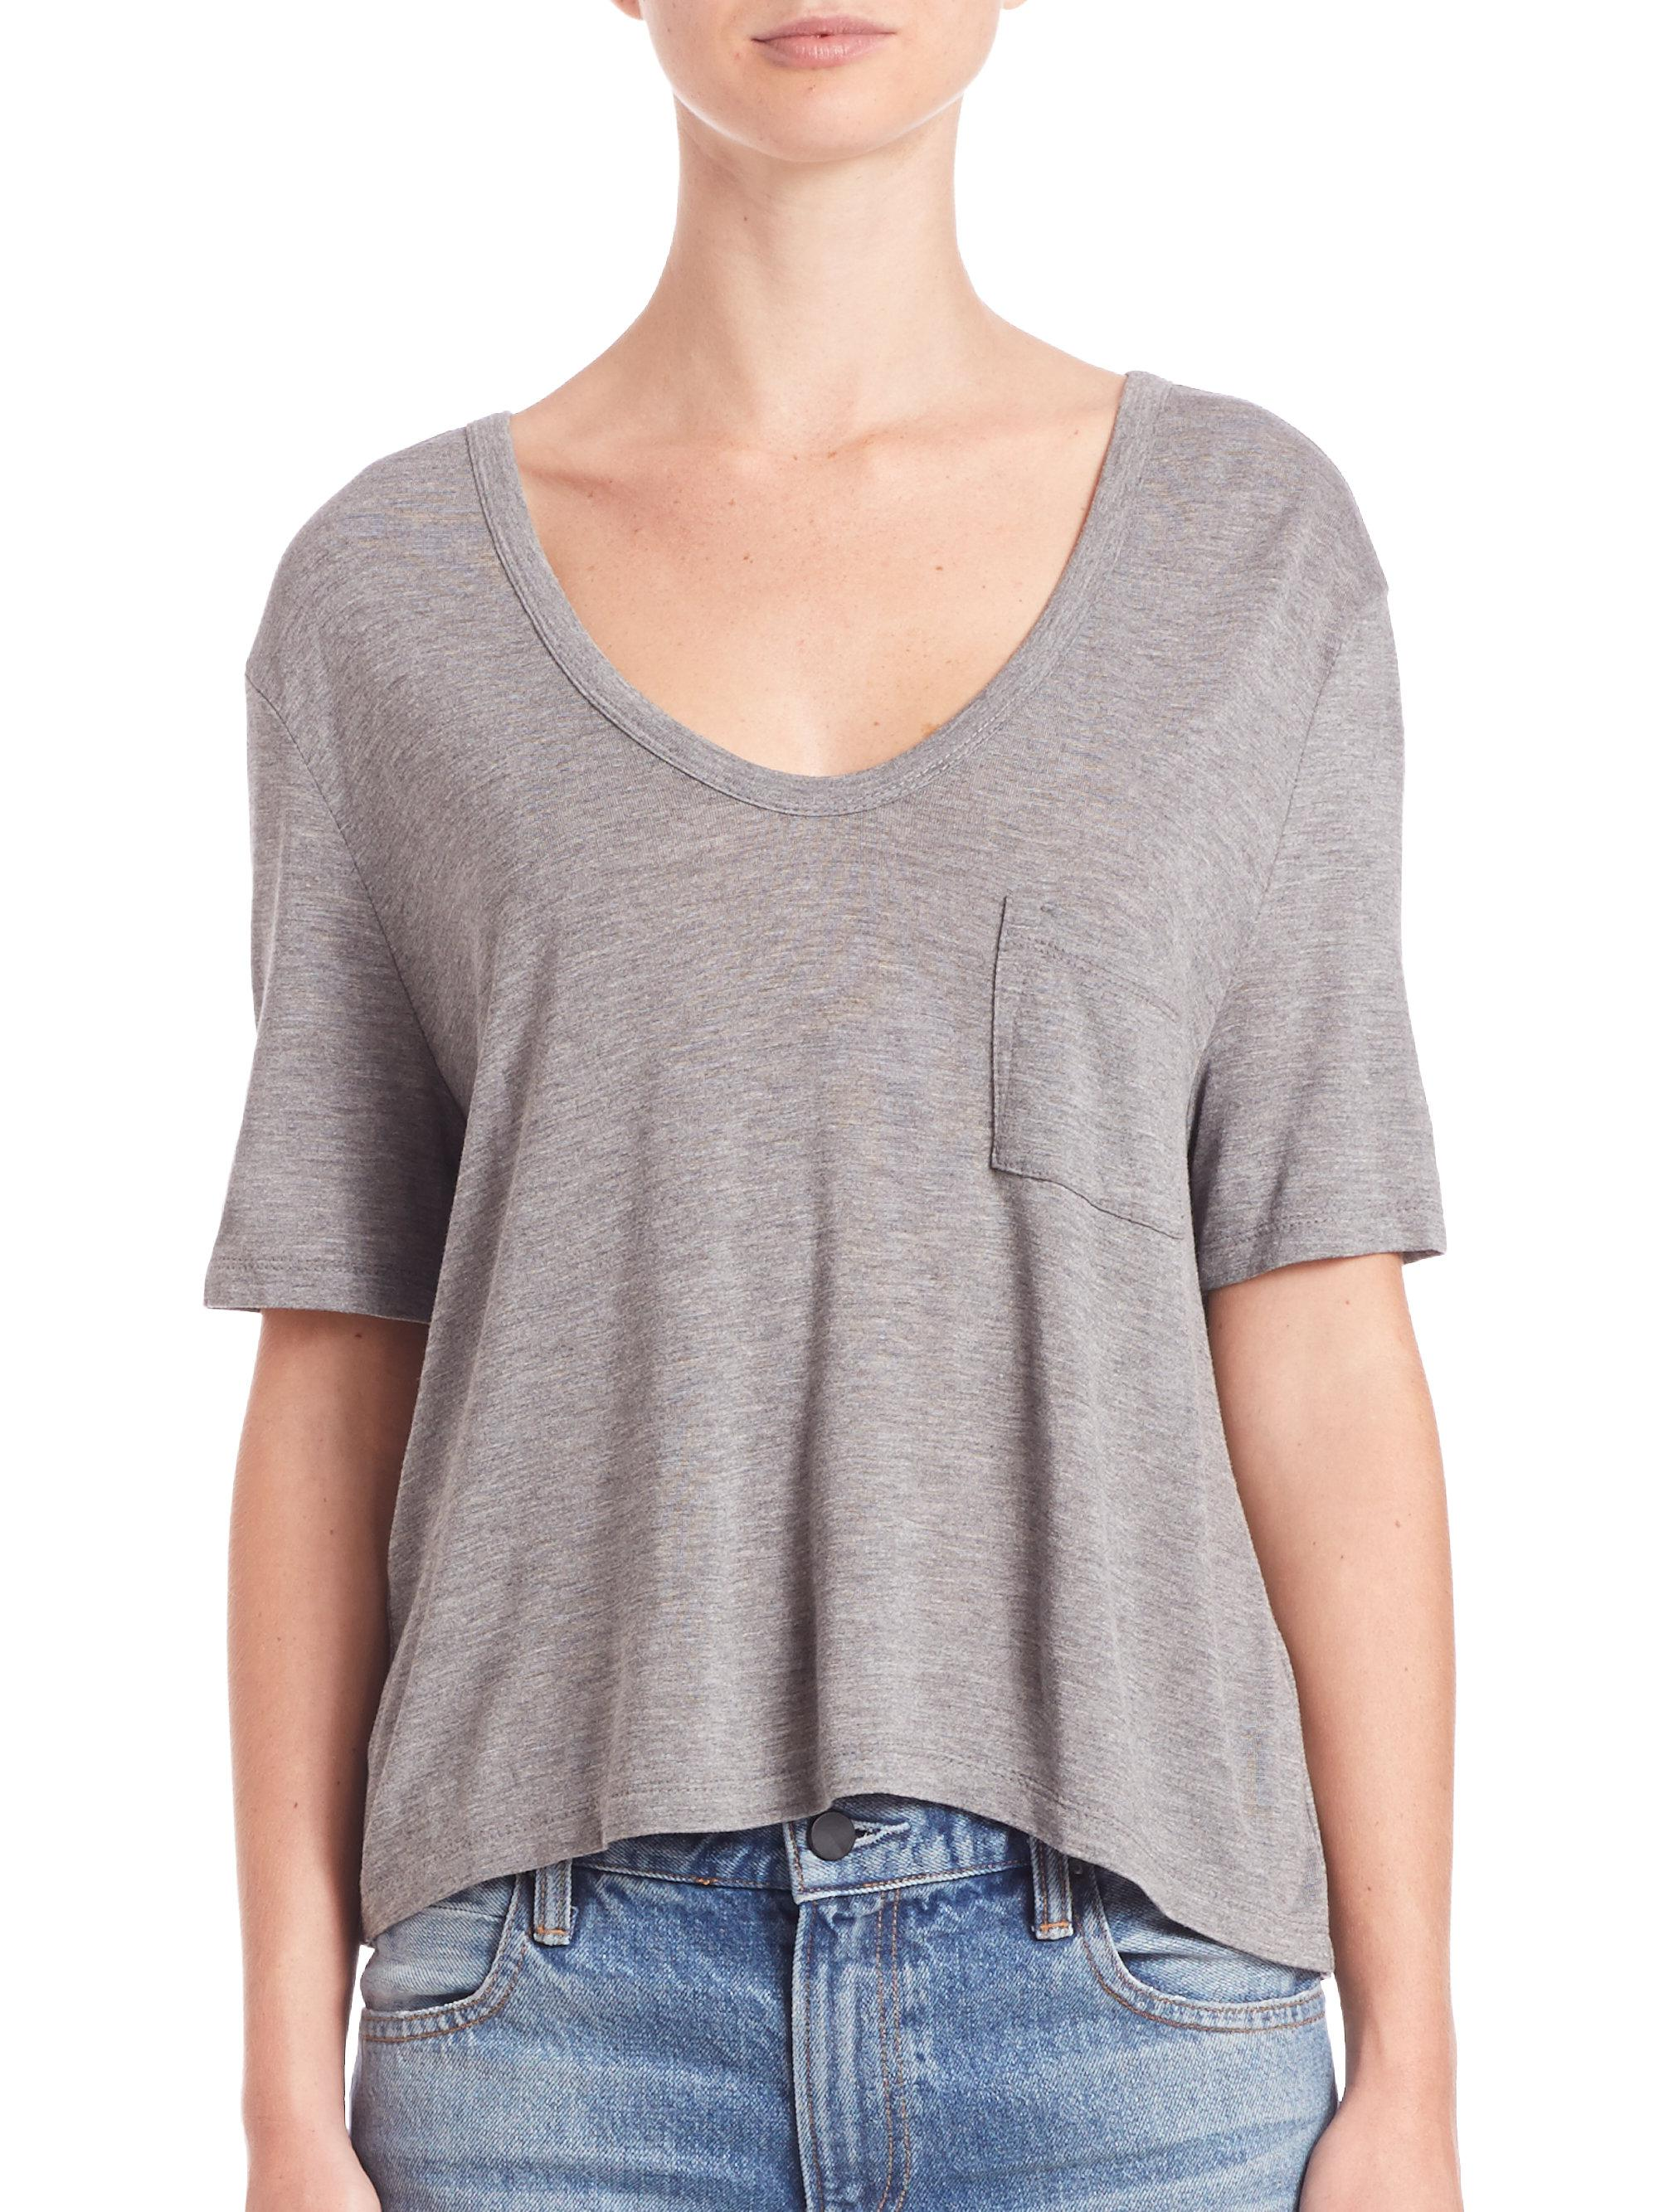 Lyst t by alexander wang classic cropped tee in grey for T by alexander wang t shirt